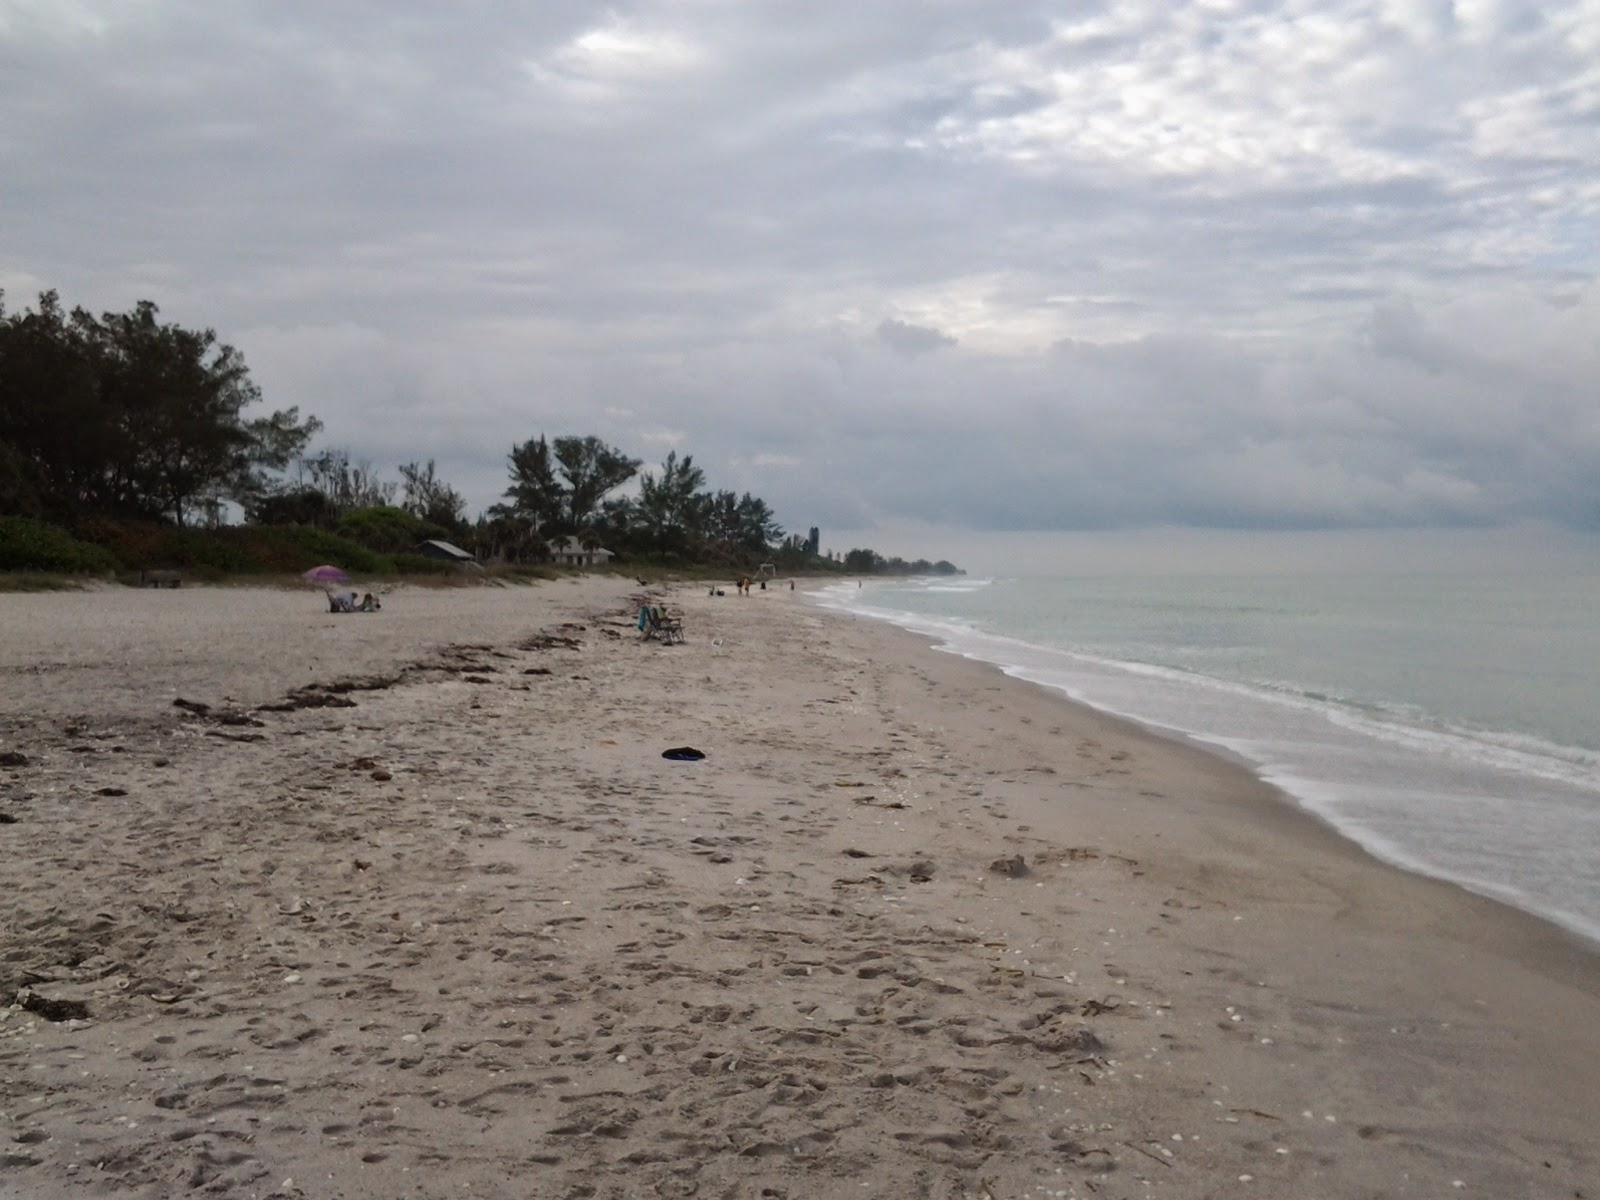 Manasota Key beach facing south